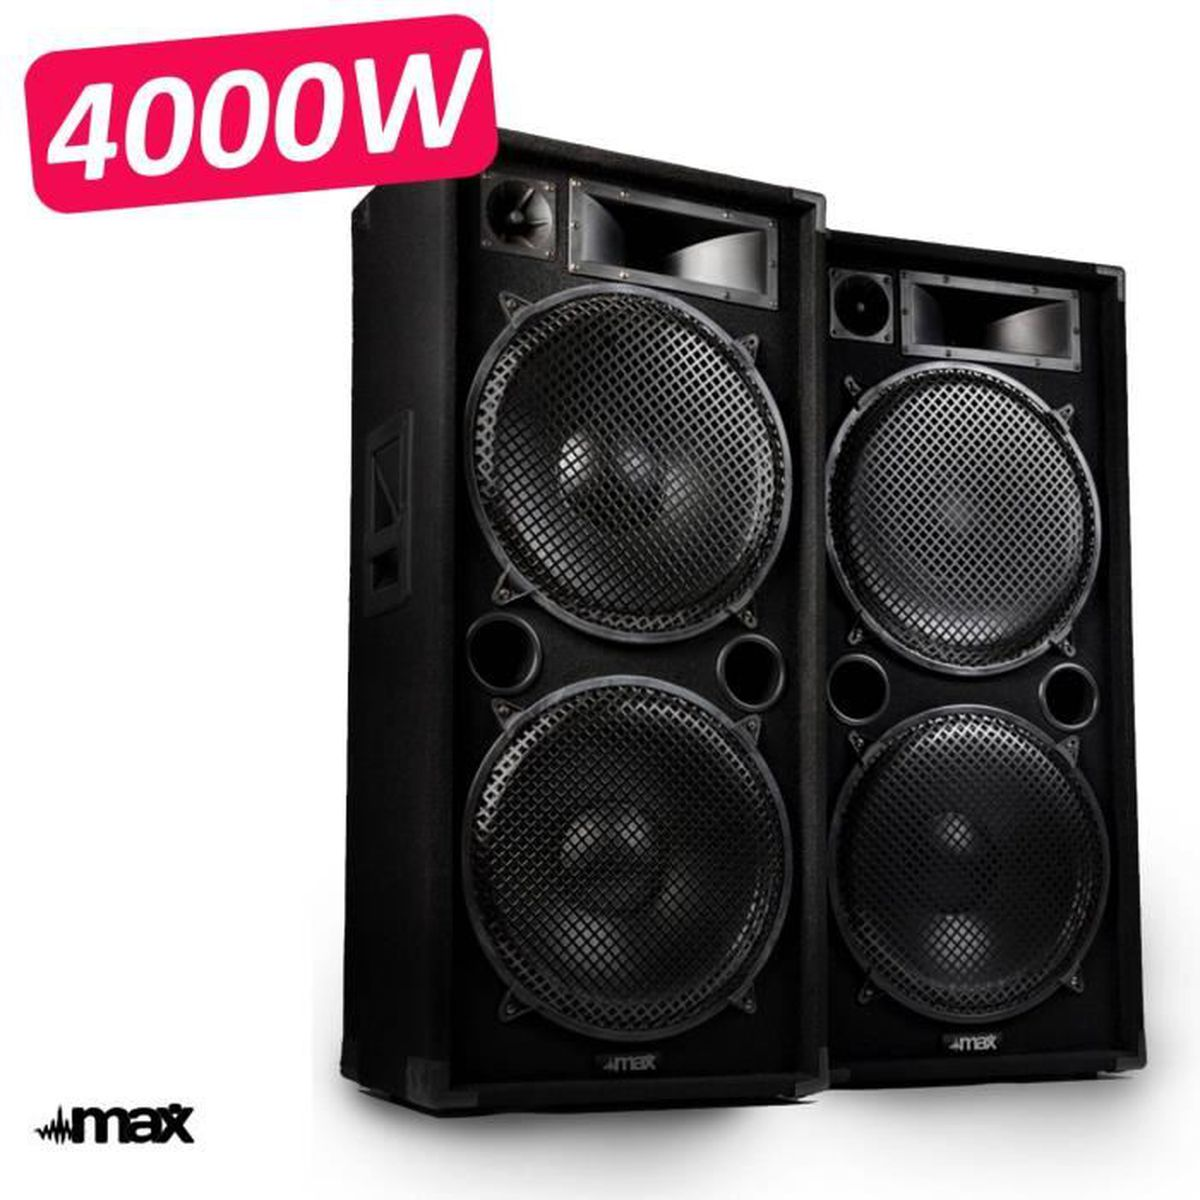 paire d 39 enceinte sonorisation 4000w pro dj max 215 full range 4x38cm pack sono avis et prix. Black Bedroom Furniture Sets. Home Design Ideas